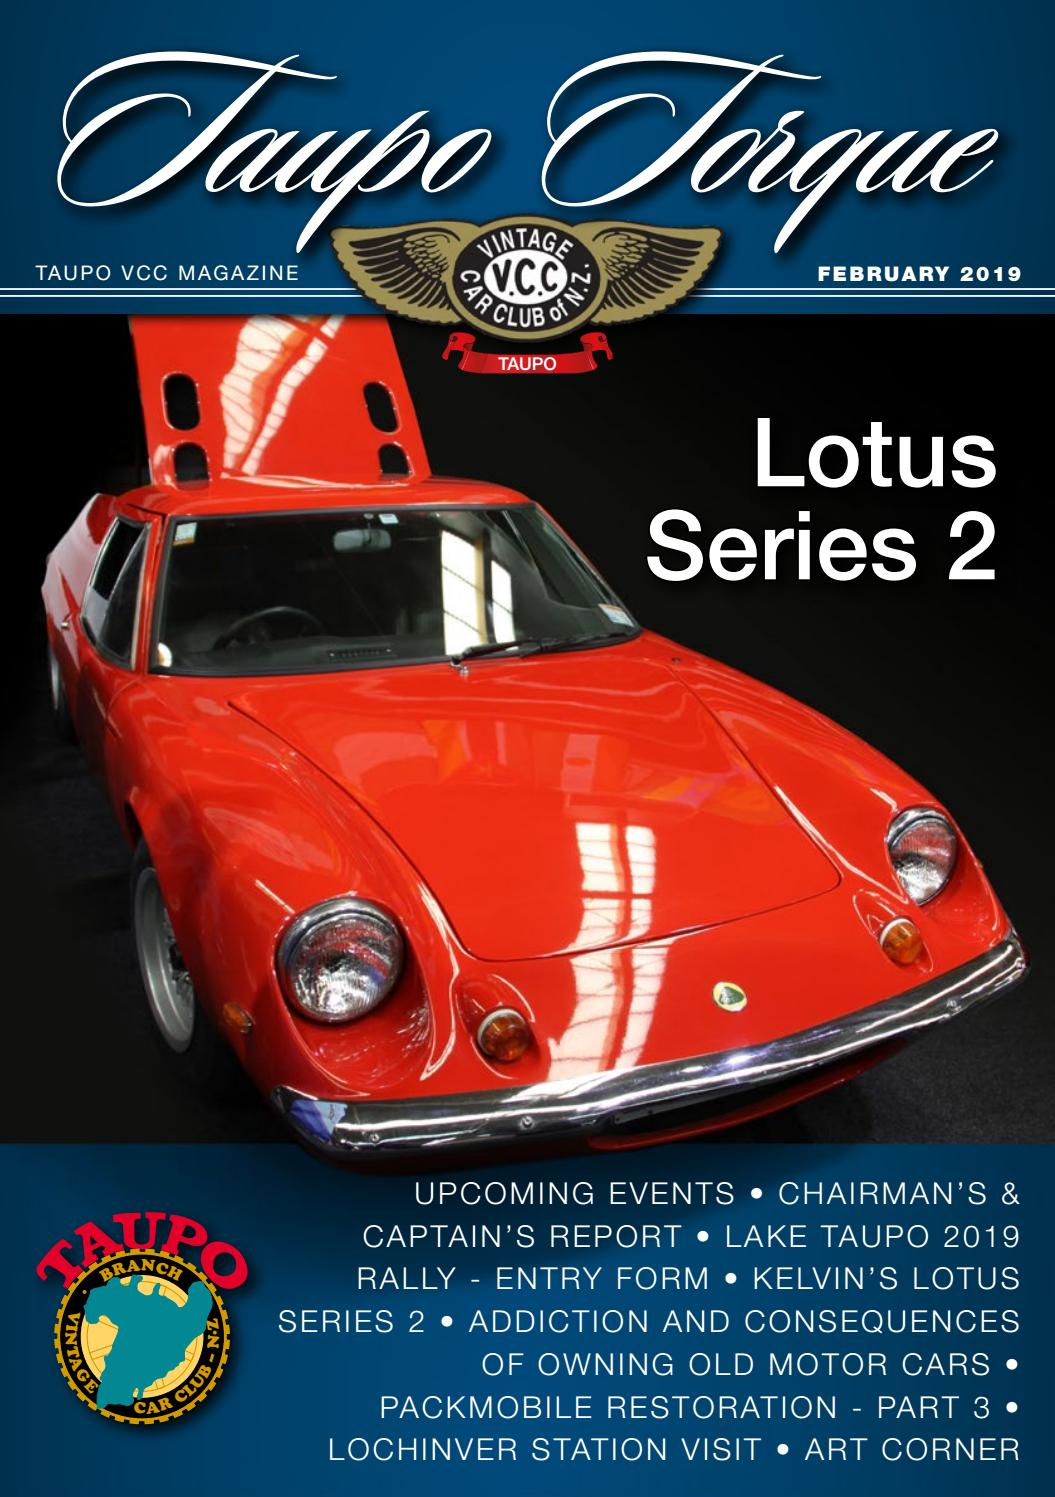 New Zealand Lotus Europa | Lotus Cars News and Information